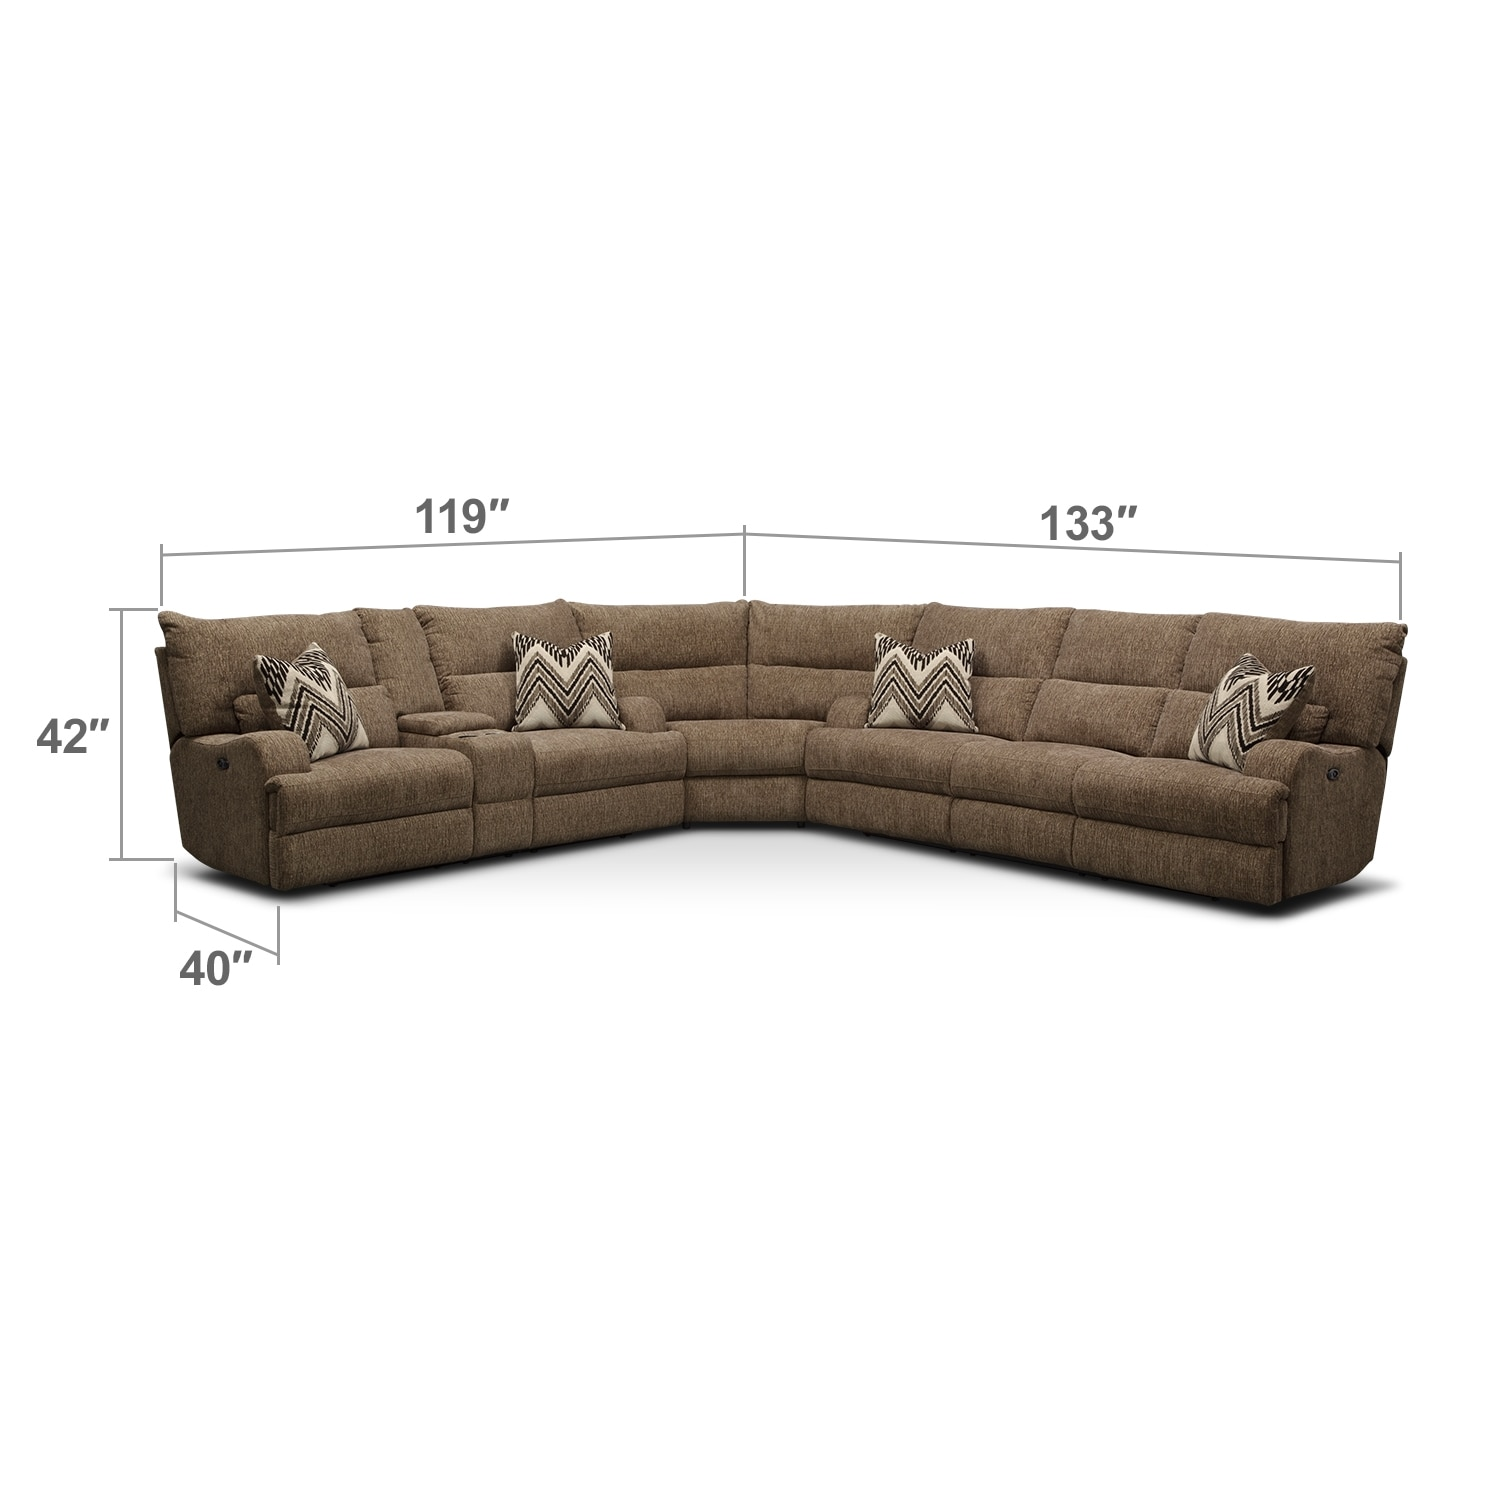 Living Room Furniture - Sundance 3 Pc. Power Reclining Sectional